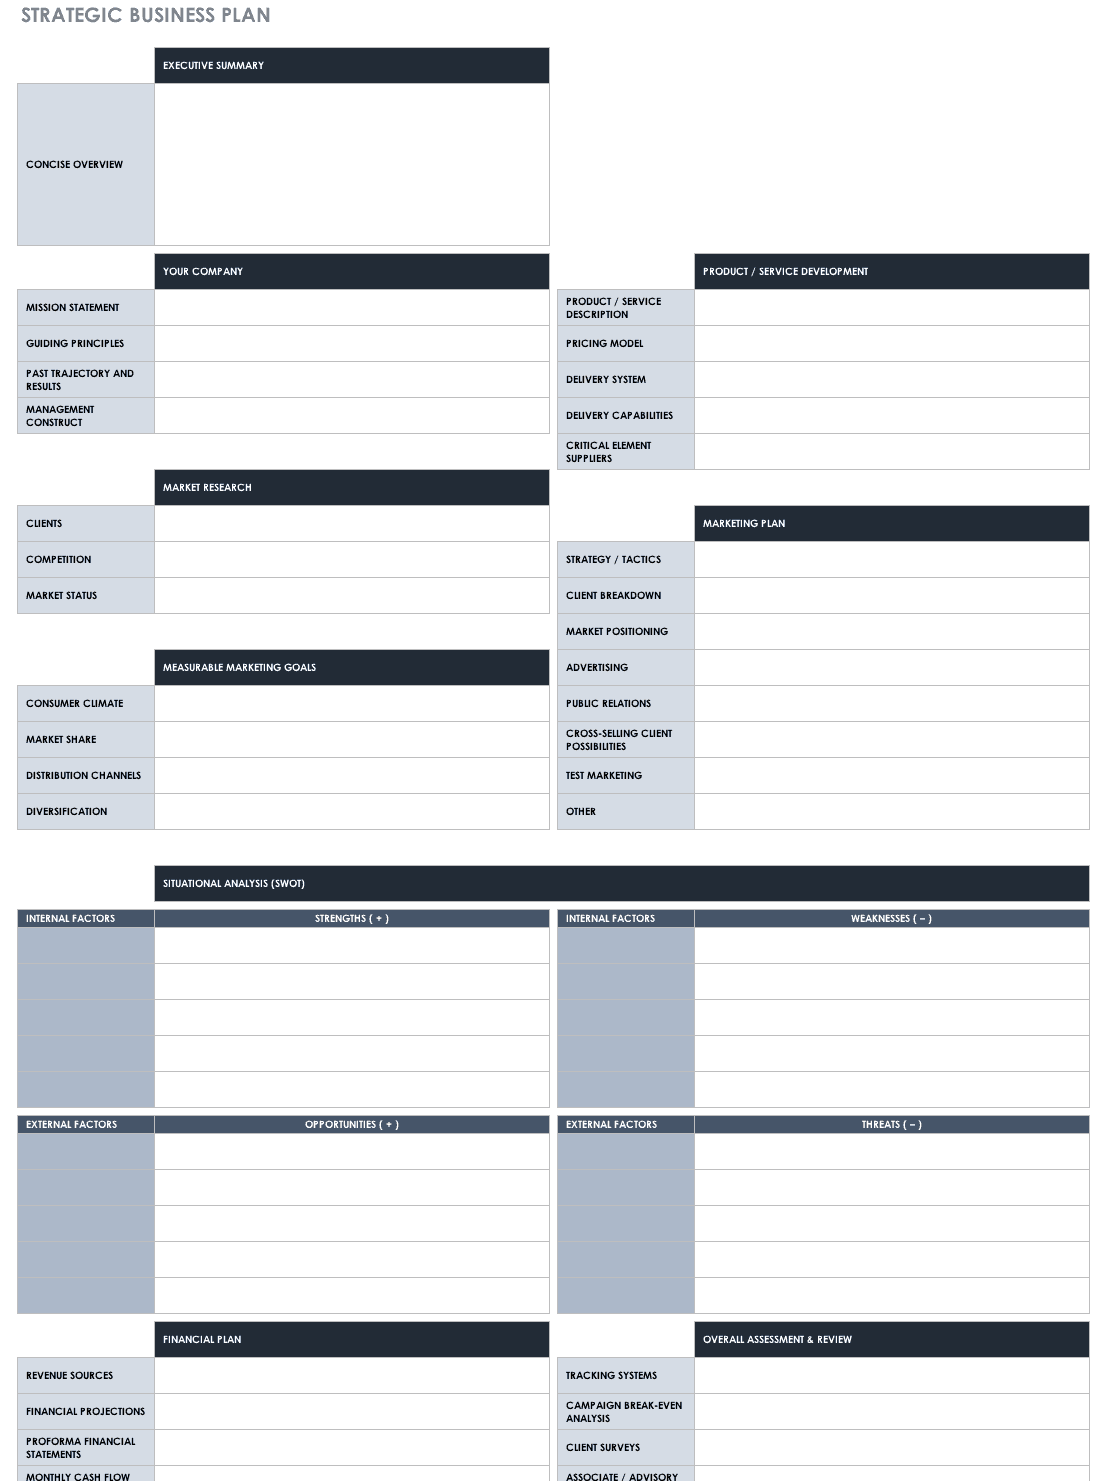 Free strategic planning templates smartsheet strategic business plan template flashek Gallery